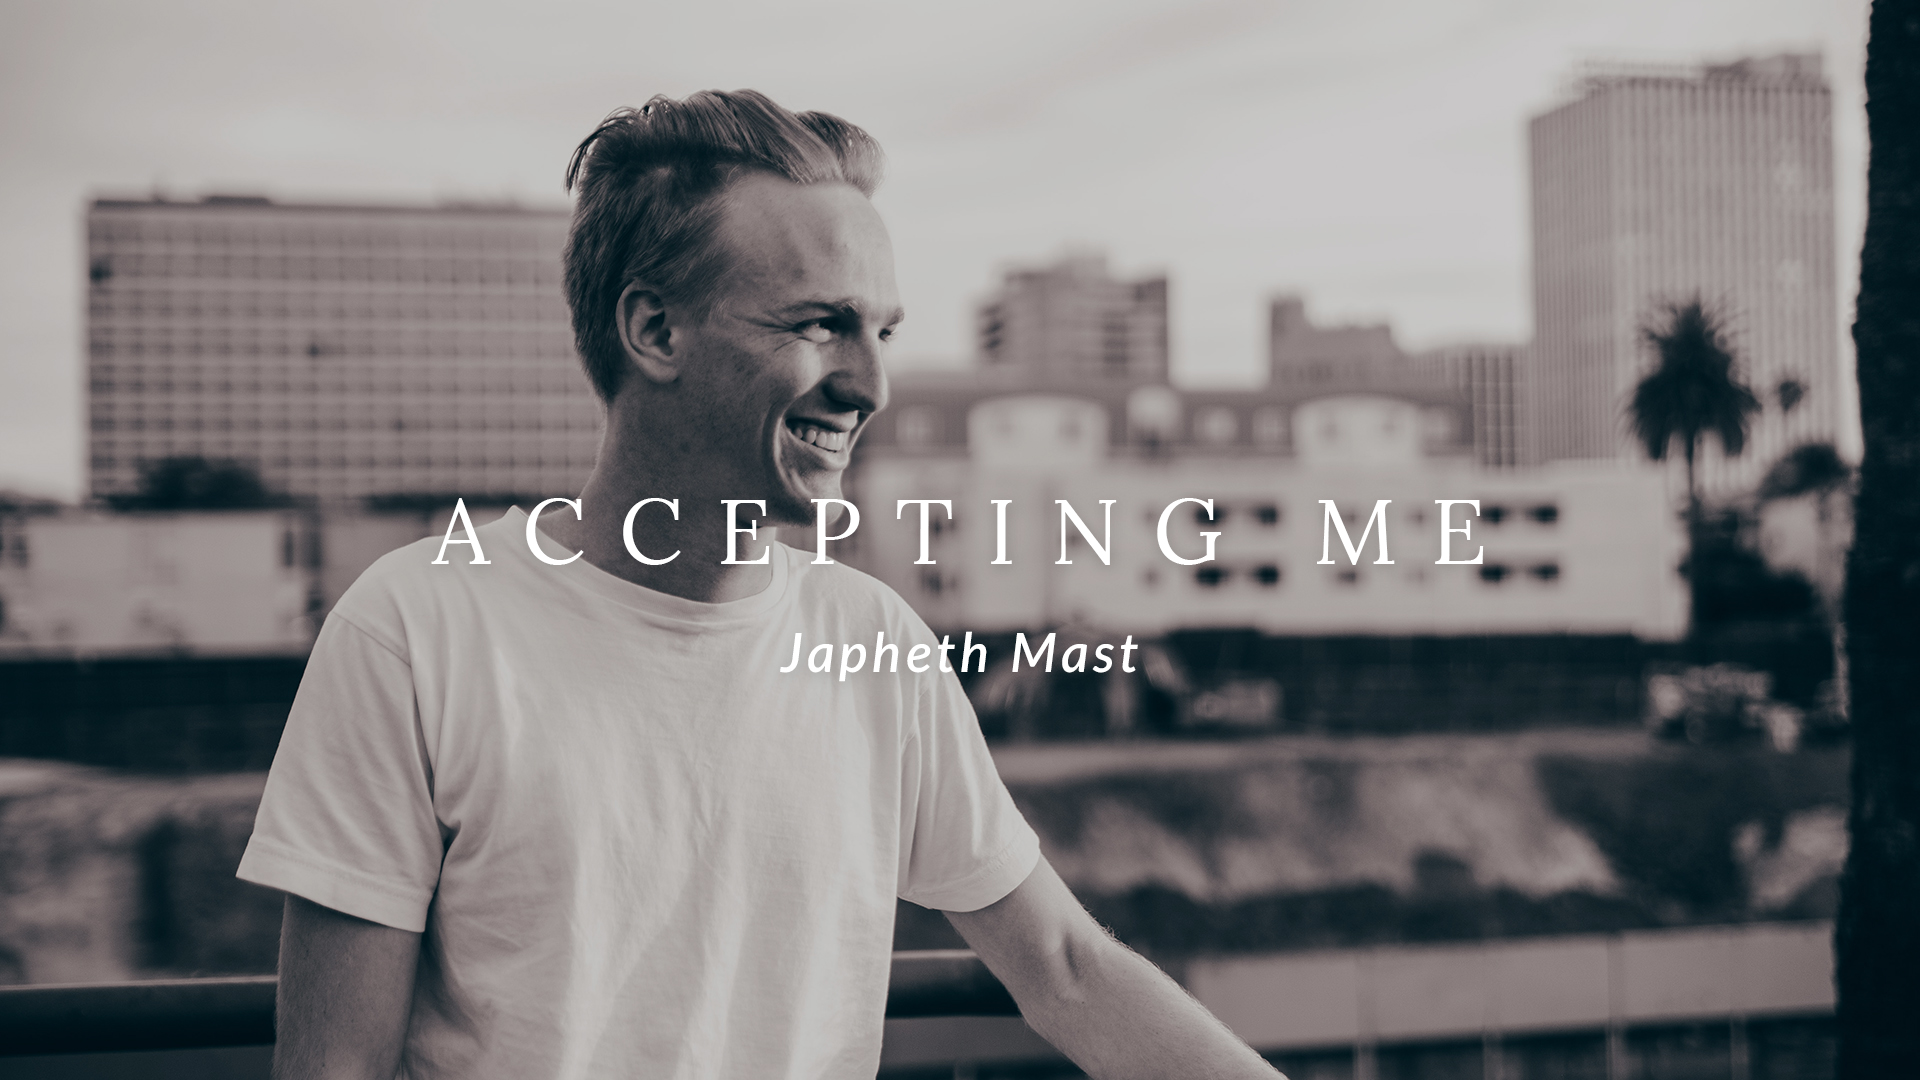 Accepting Me Spoken Word by Japheth Mast | Make Life Awesome